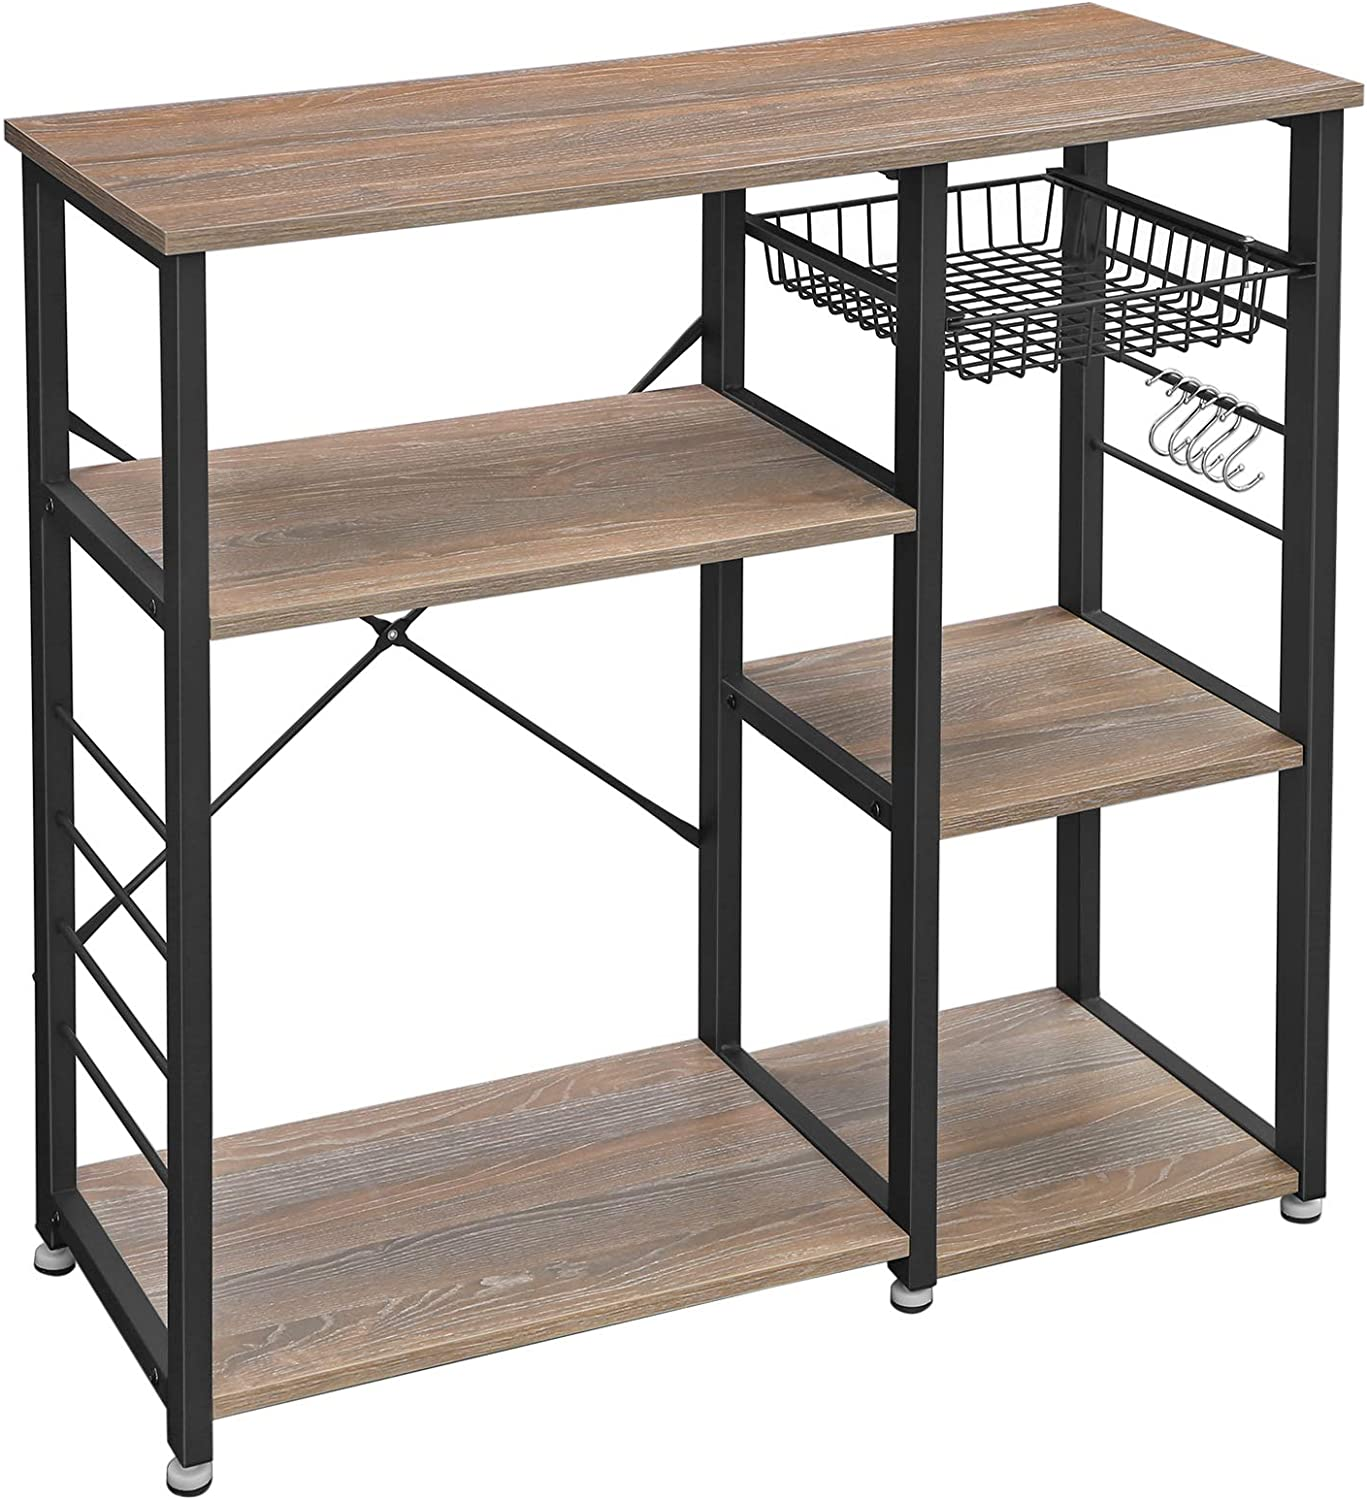 VASAGLE ALINRU Kitchen Baker's Rack, Coffee Bar, Microwave Oven Stand, Industrial, Weathered Sand UKKS90BH